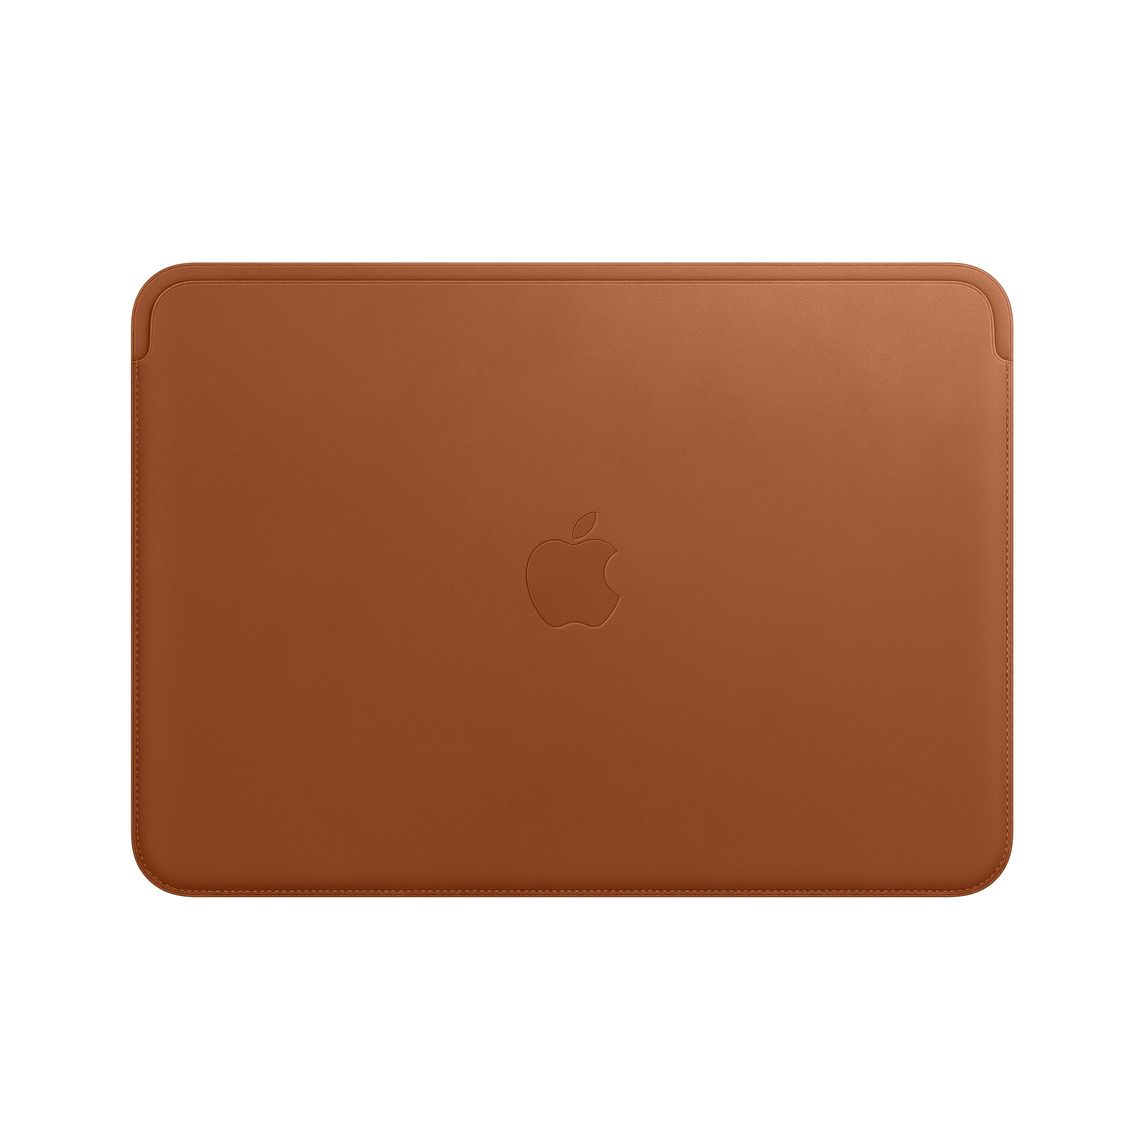 Leather Sleeve for 1‑inch MacBook - Saddle Brown